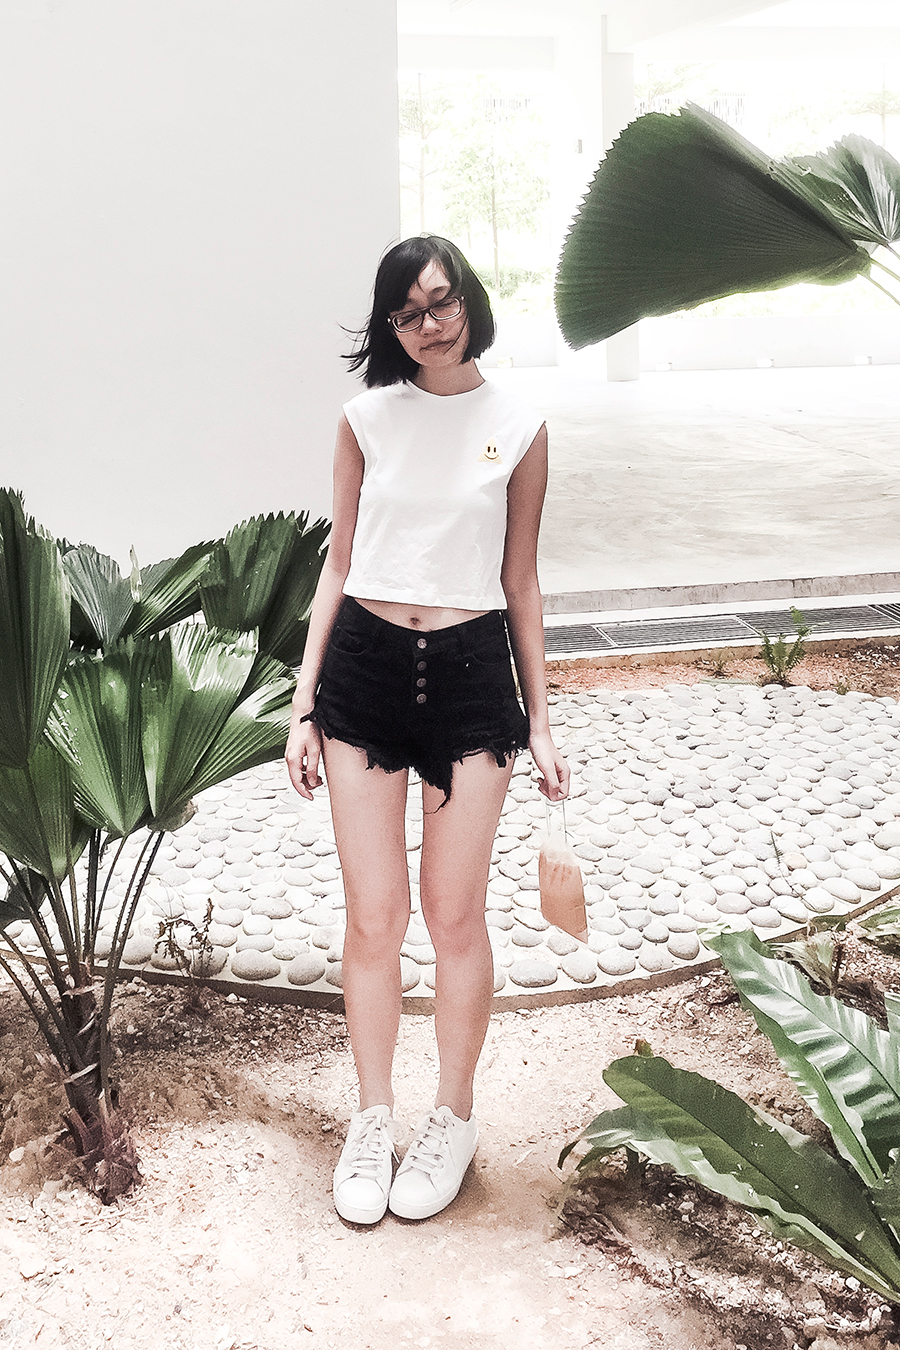 Minimal outfit for a trip to Children's Biennale at National Gallery Singapore.